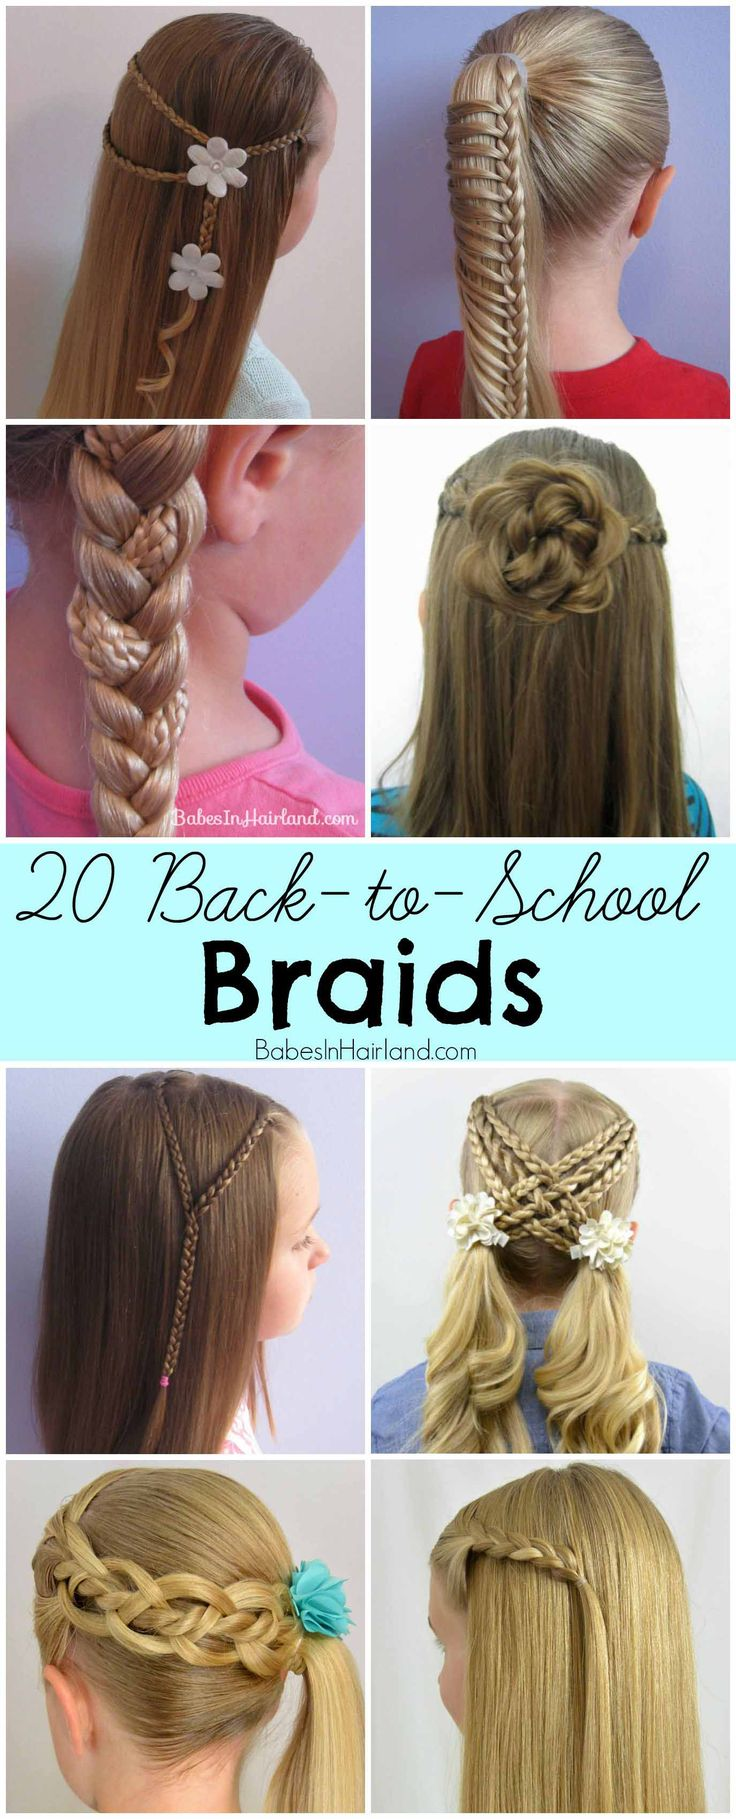 The 25 Best Back To School Hairstyles Ideas On Pinterest -4047